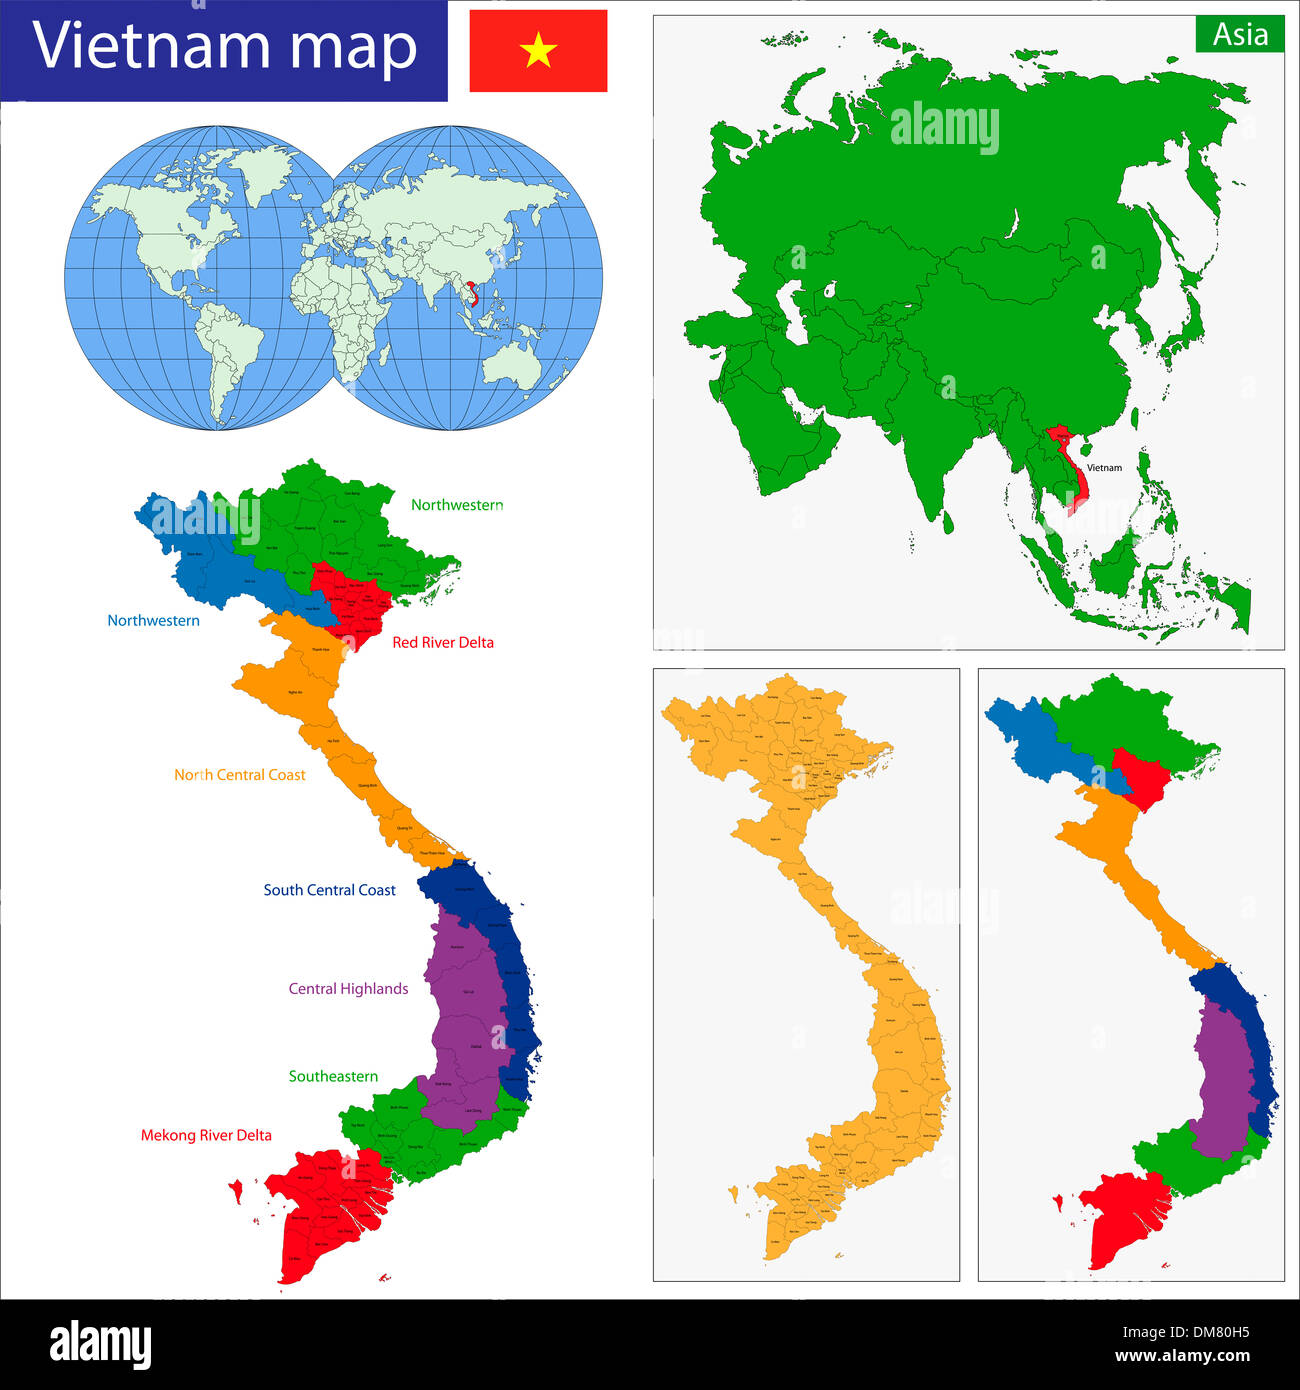 Vietnam Map Stock Photo 64100321 Alamy